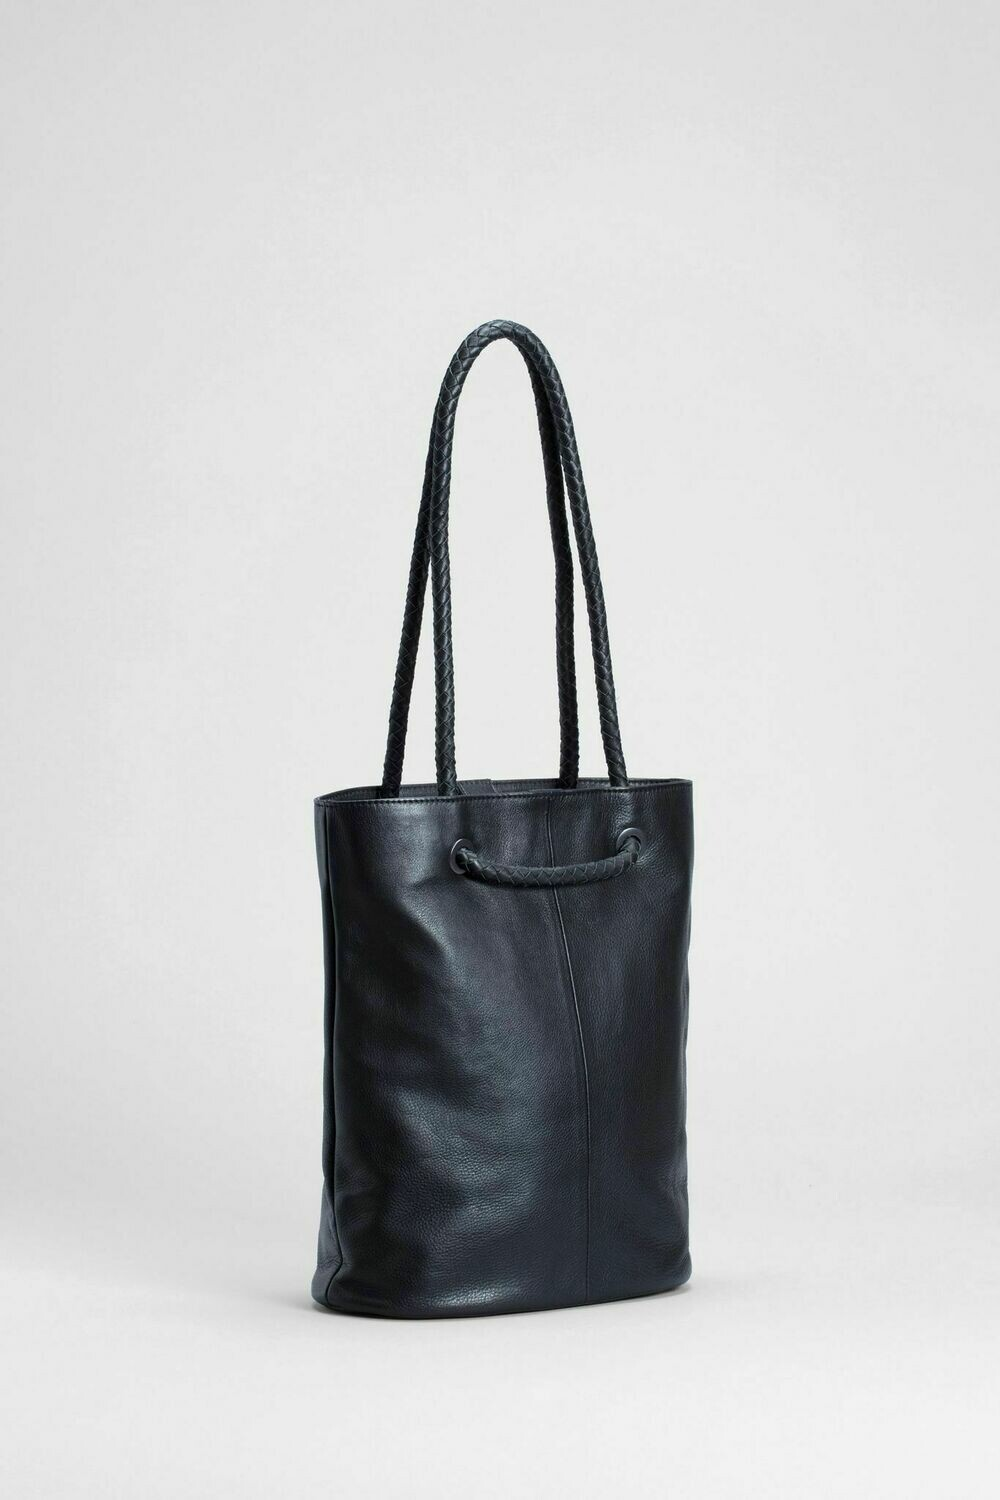 Hede Large Tote - Black